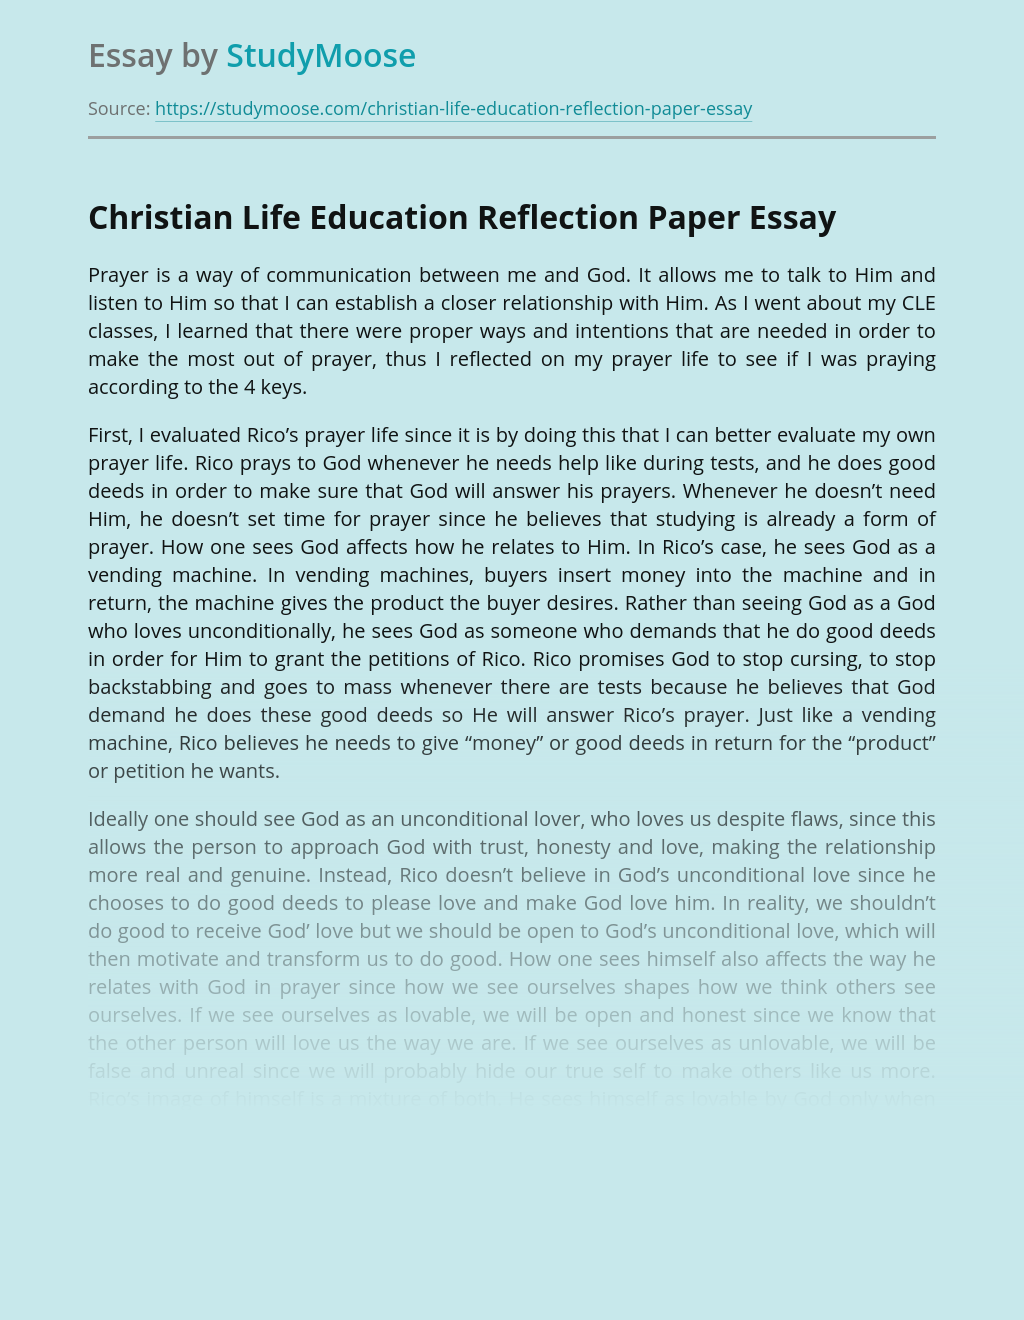 Christian Life Education Reflection Paper